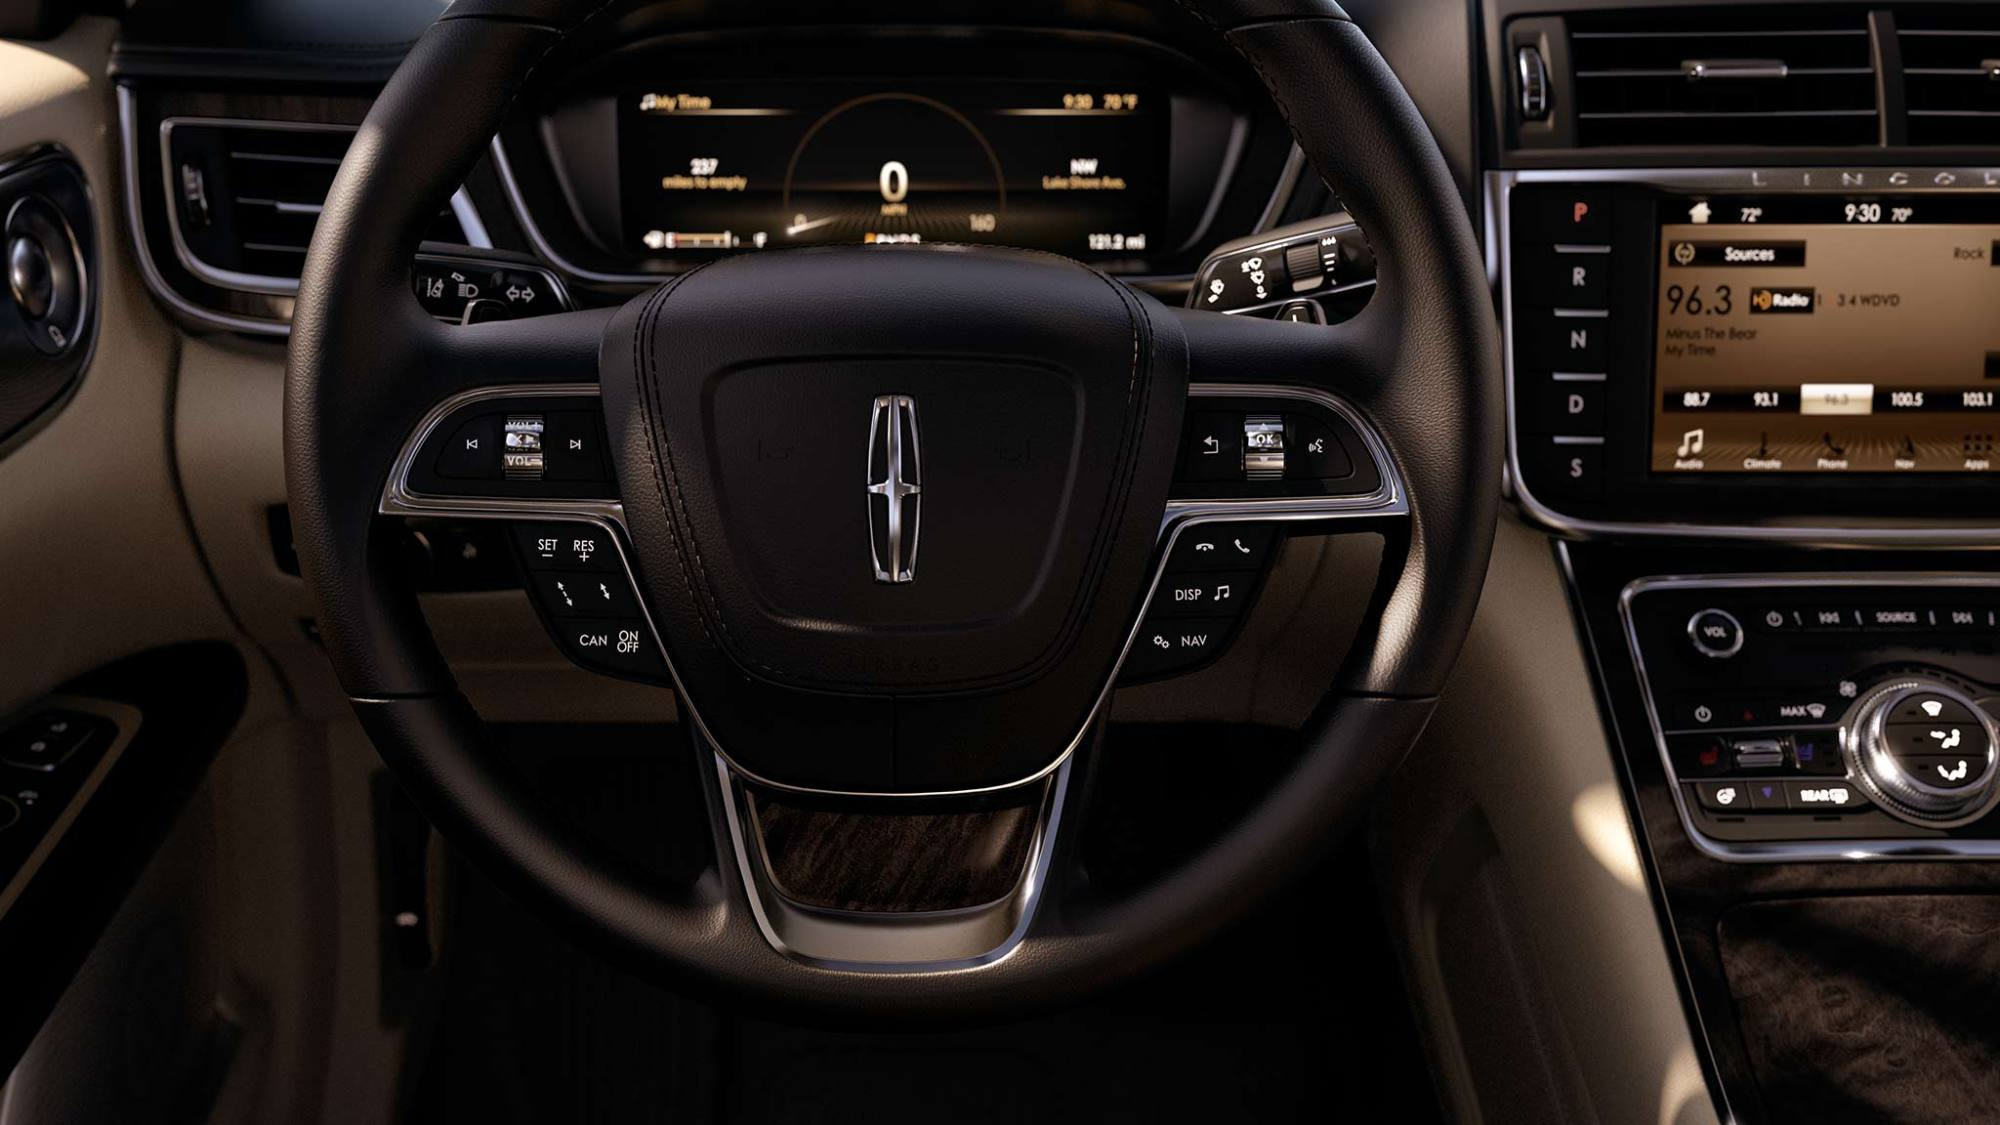 hight resolution of new lincoln continental interior image 1